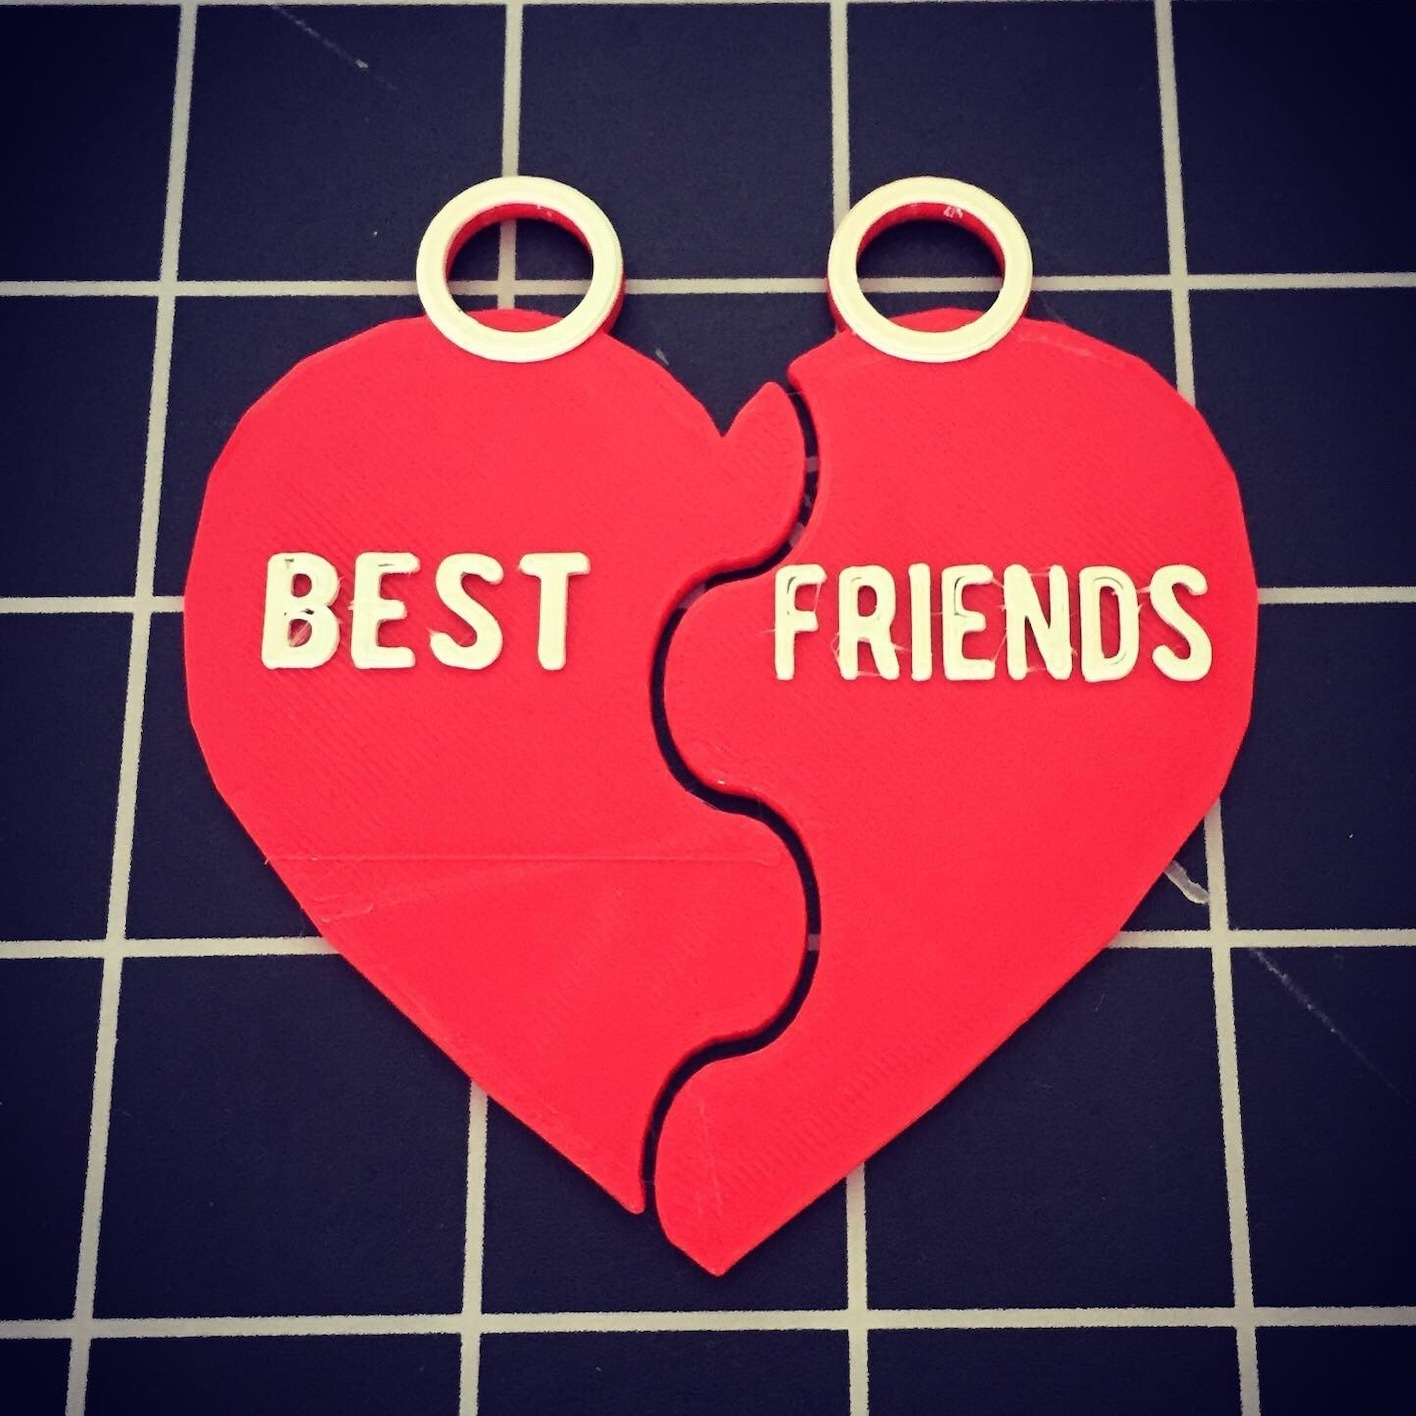 8115C7D5-09A3-43CD-B21E-4A54A5D78E35.JPG Download free STL file Best friends BFF during • 3D printer object, serial_print3r